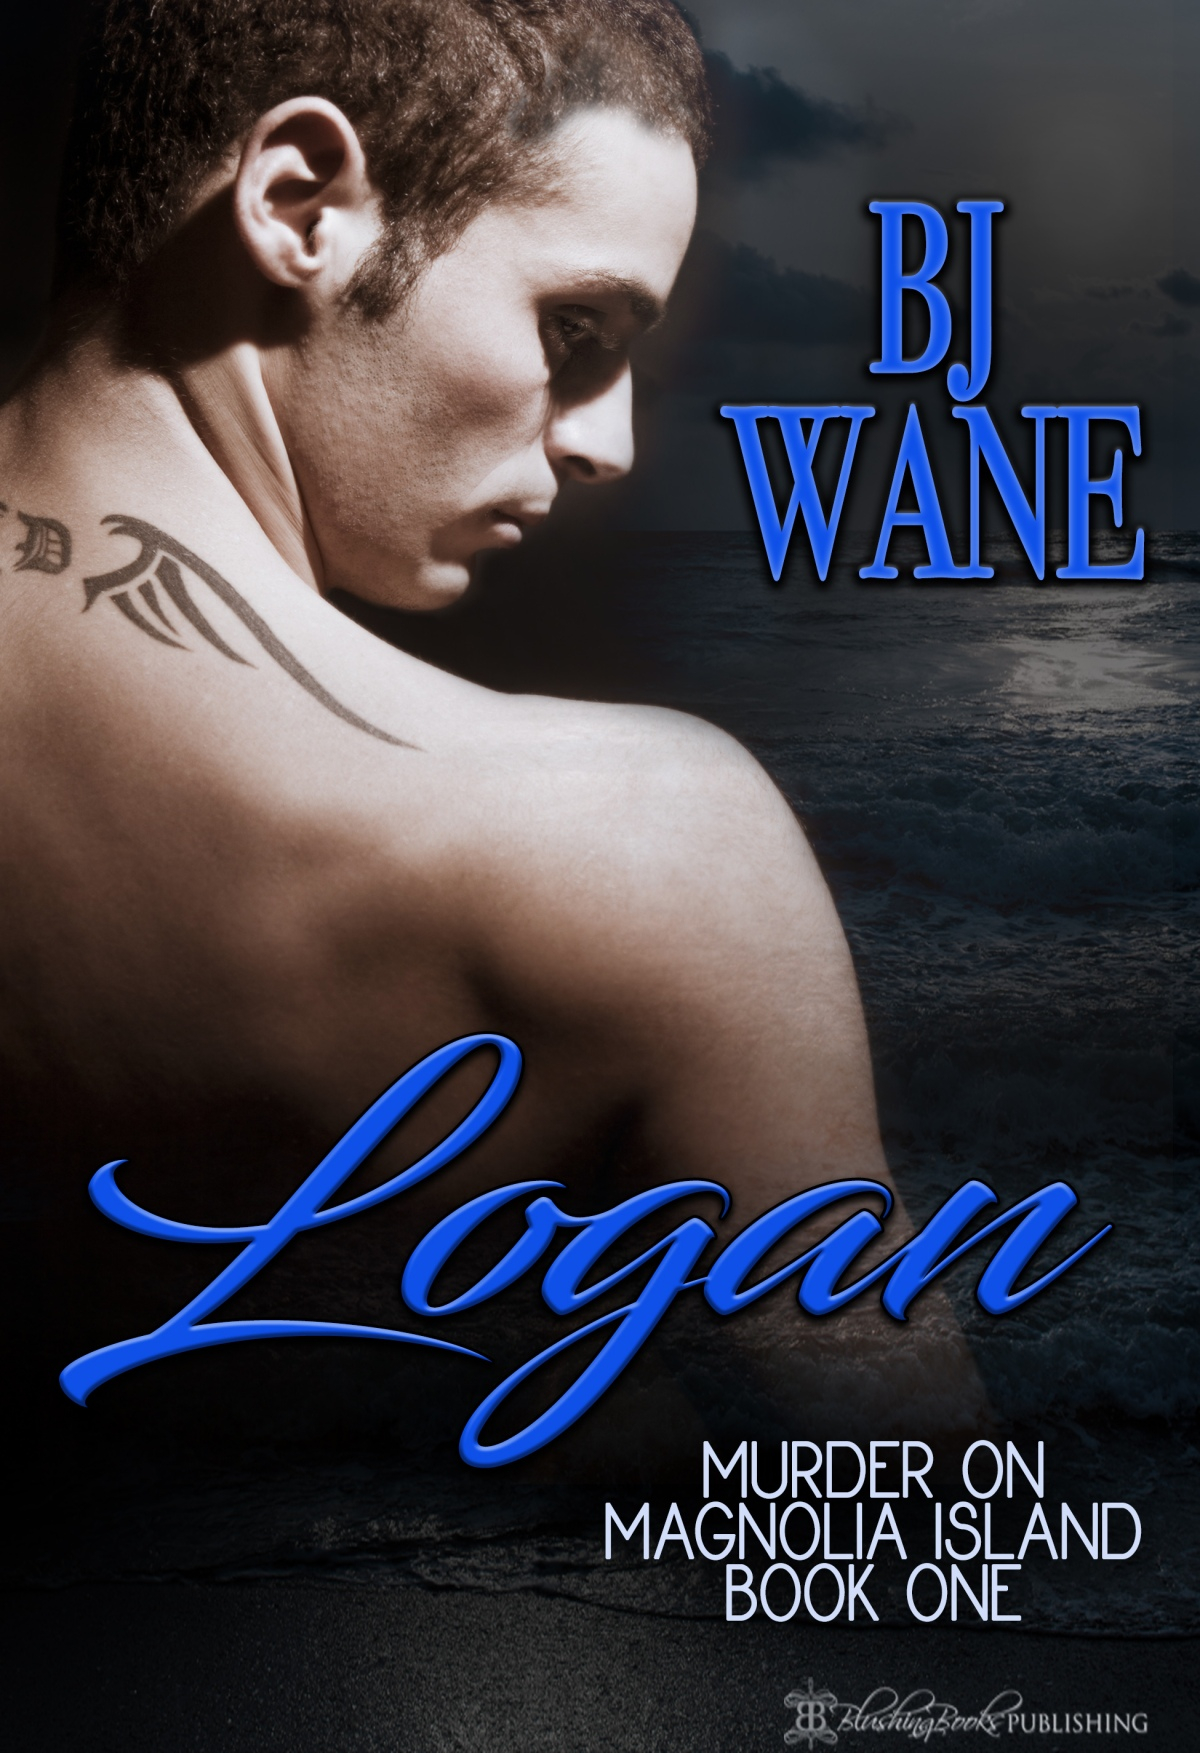 Logan, Murder on Magnolia Island.